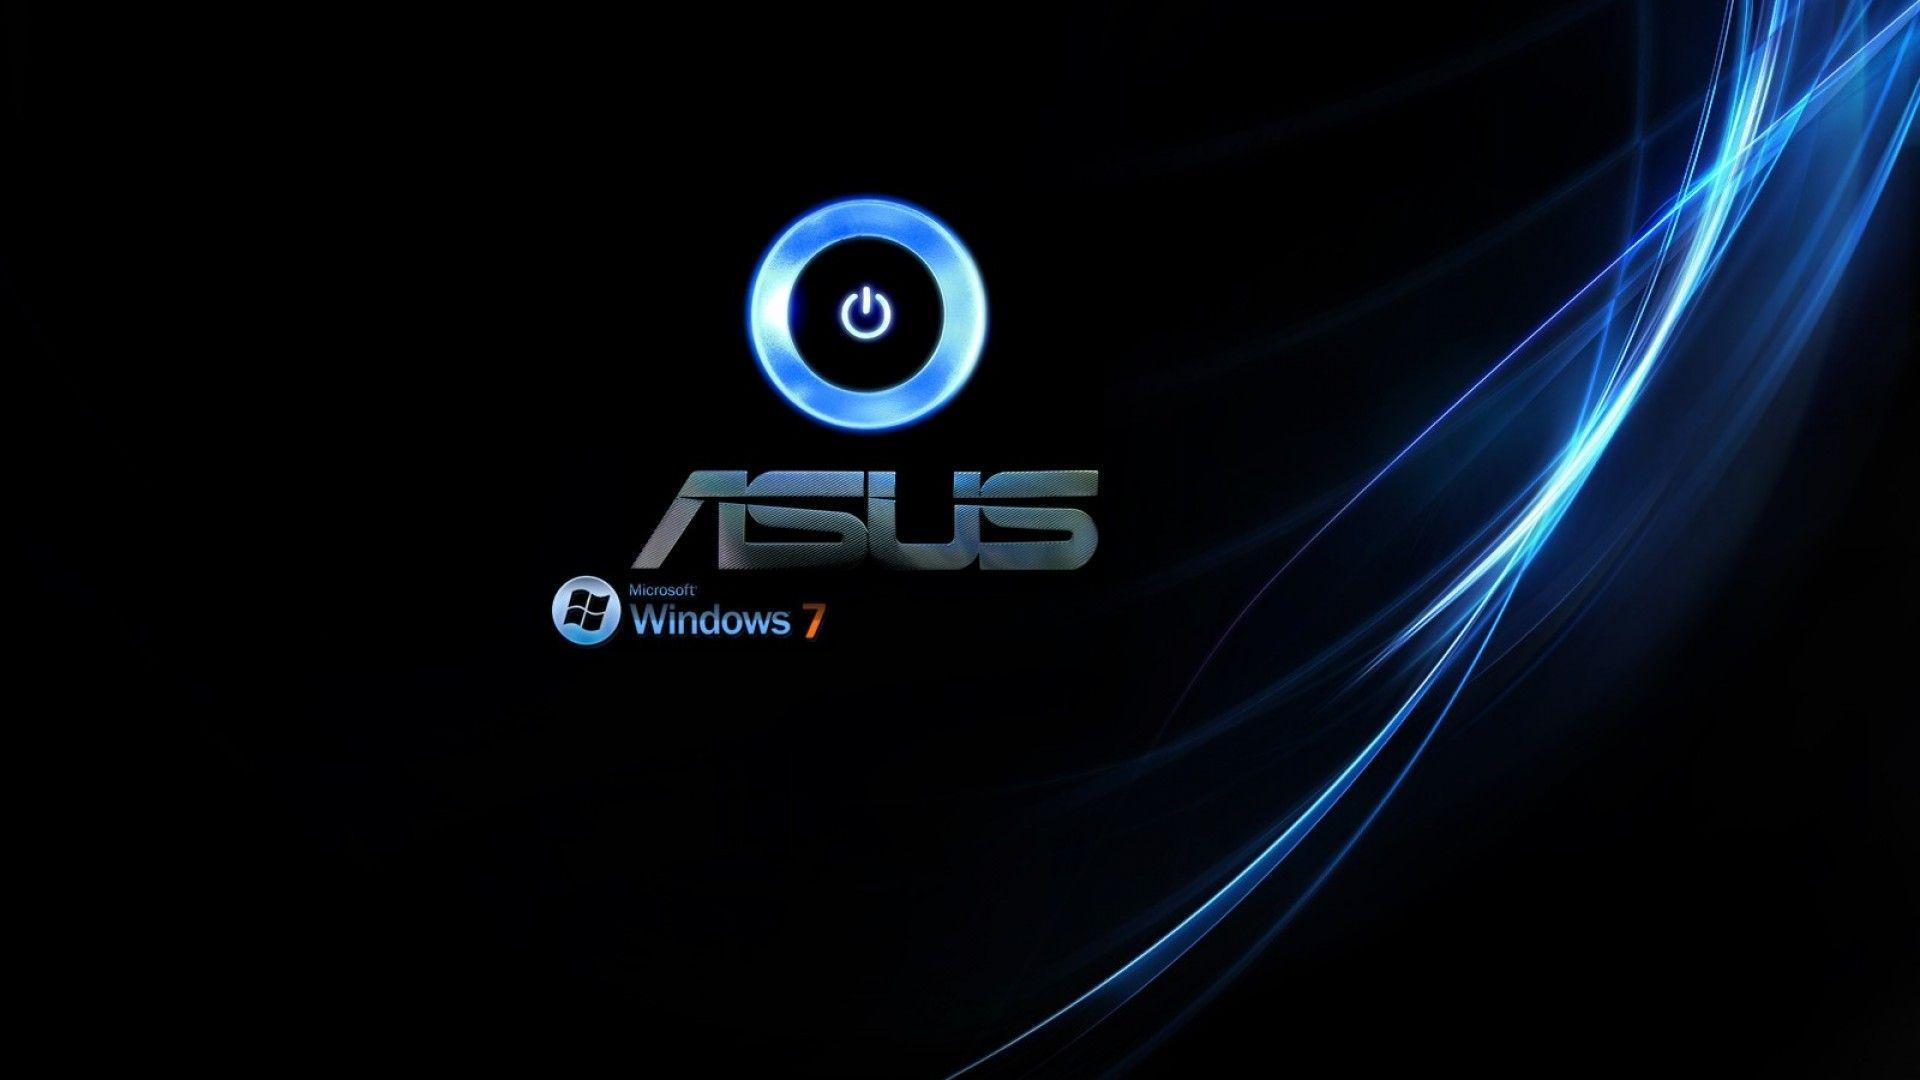 asus tapety hd